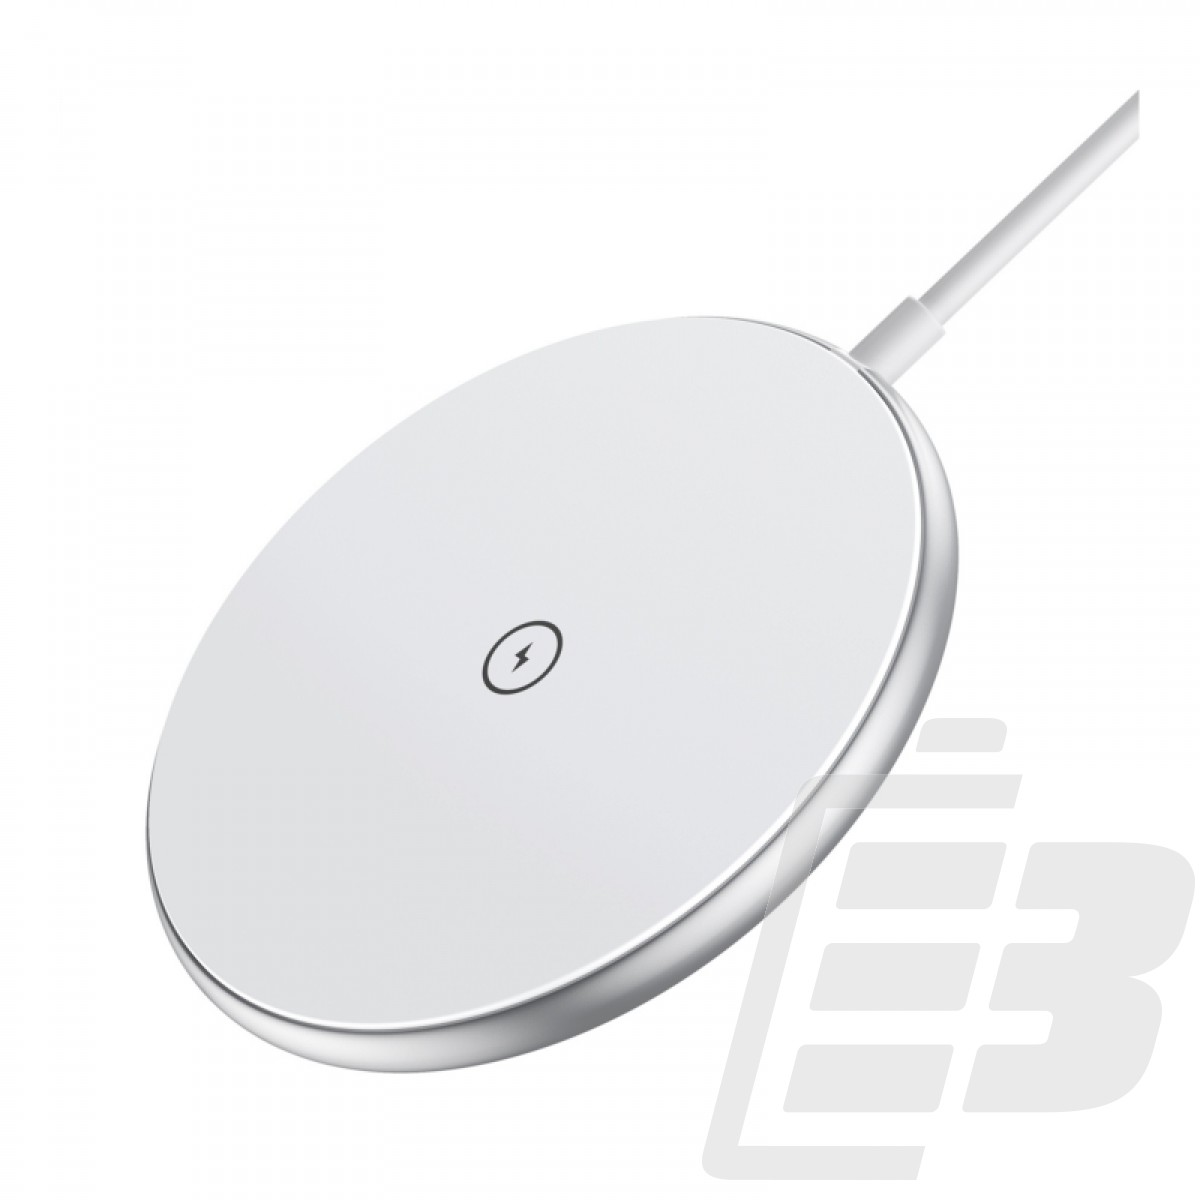 Choetech T580-F Magnetic Wireless Charging Pad